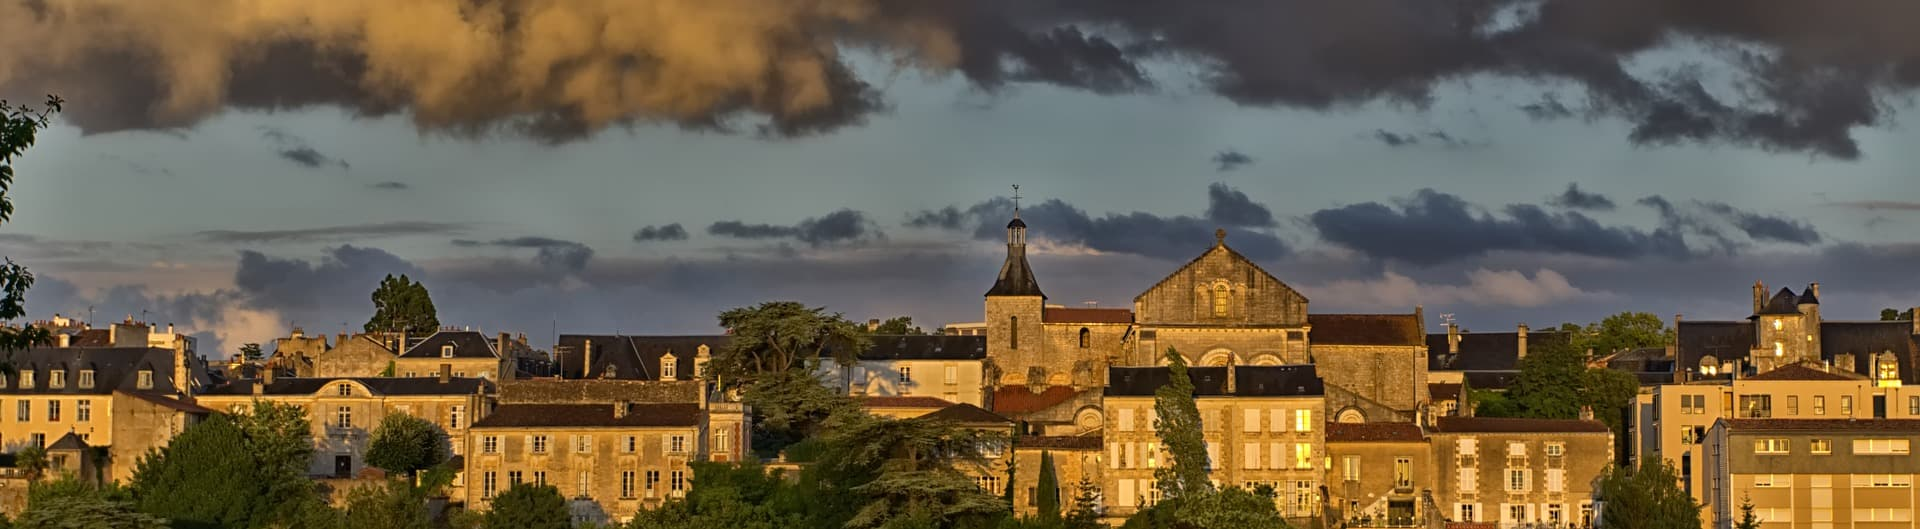 france-itineraire-Poitiers-voyage